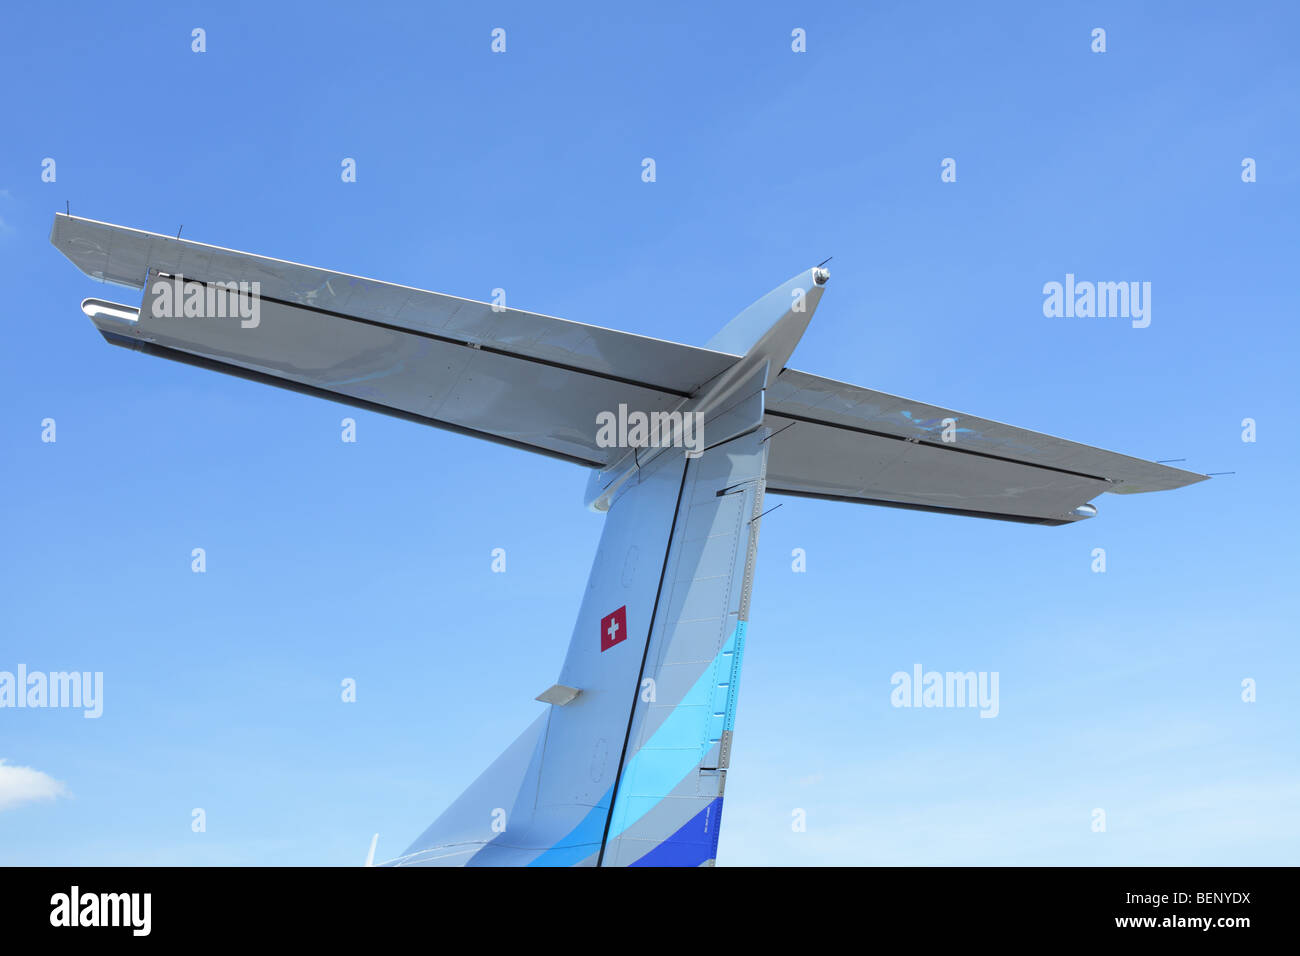 Tail section of light aircraft including rudder, tail-wings and elevators set against a blue sky background. - Stock Image